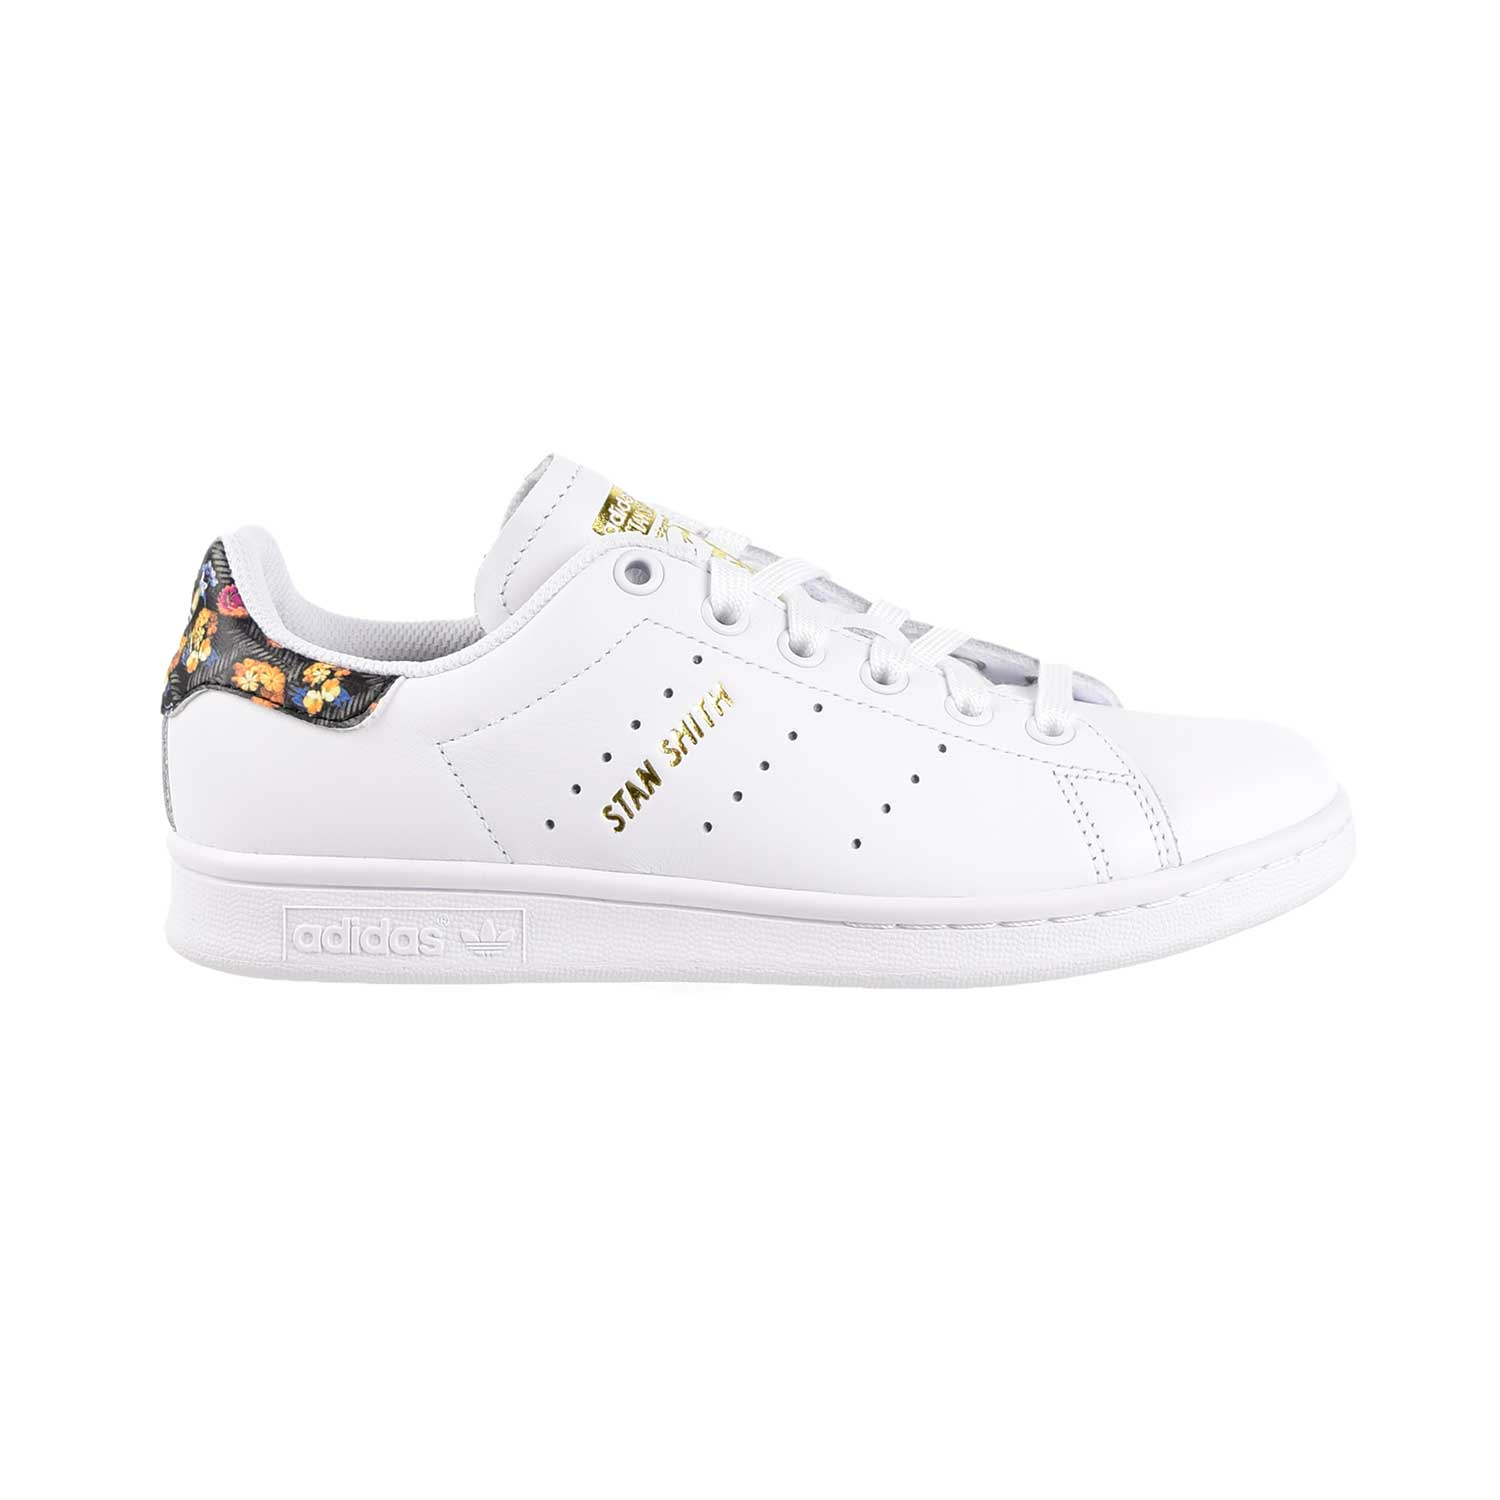 Details about Adidas Stan Smith Womens Shoes Floral Footwear White Gold EF1481